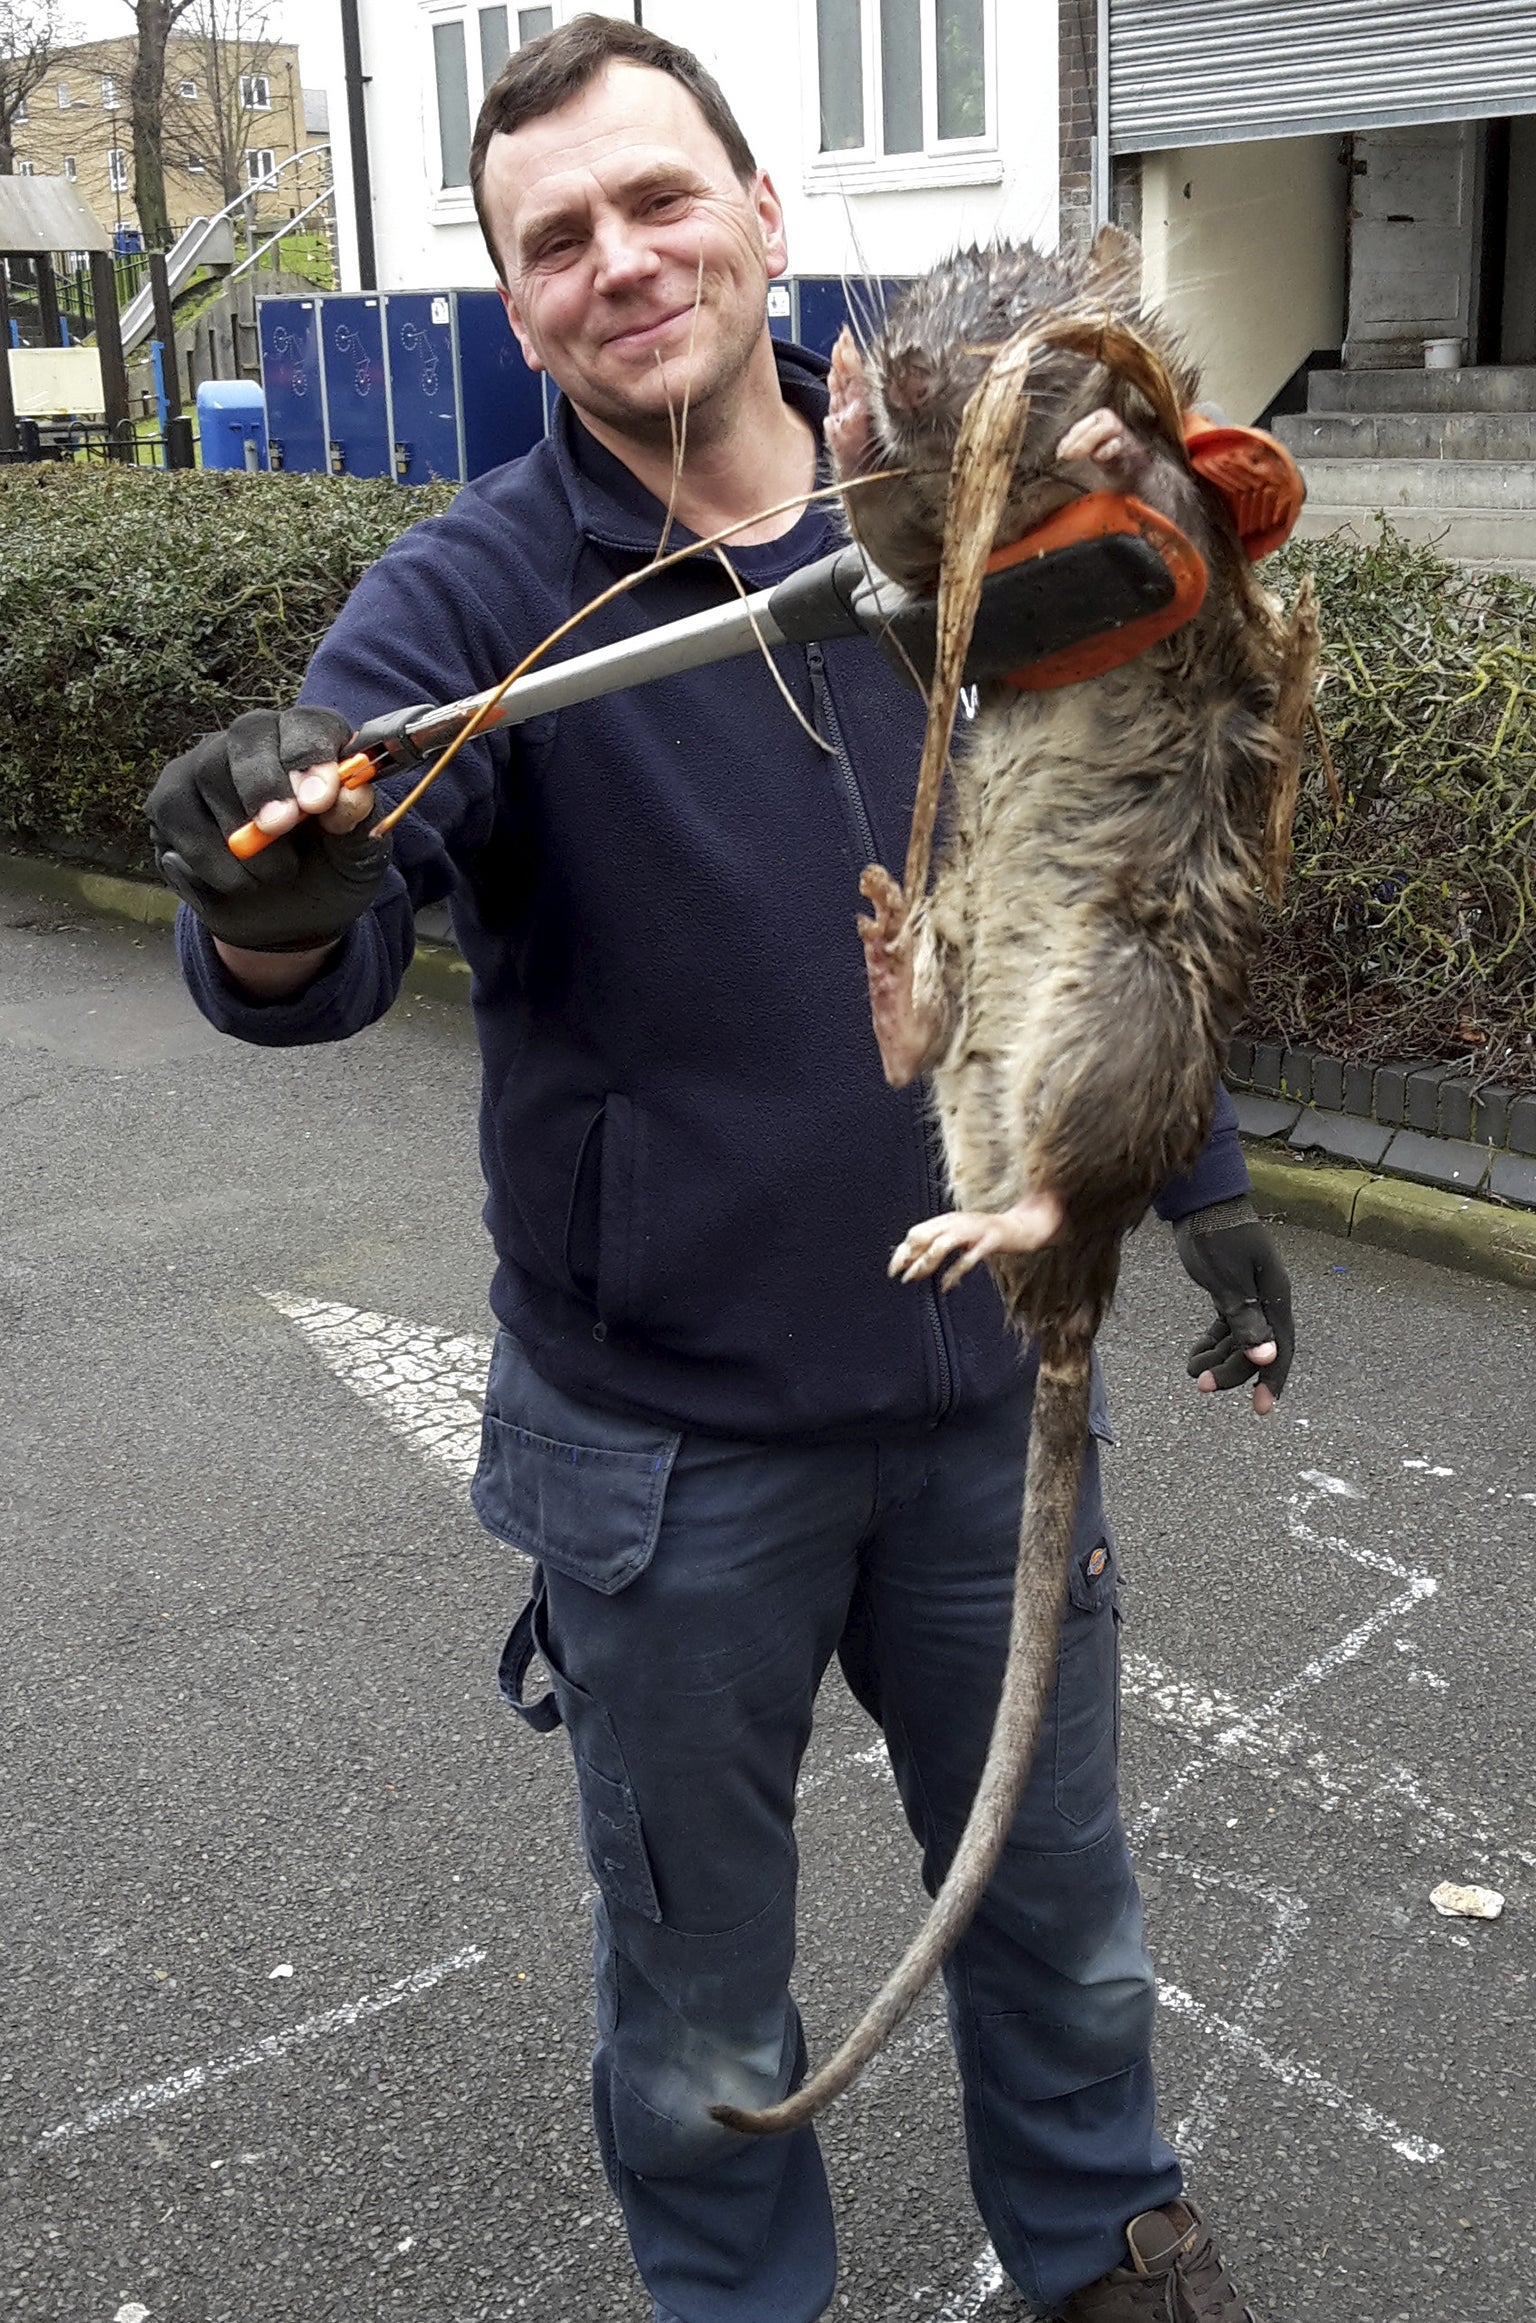 Giant Rat Found In London Gas Engineer Finds Rodent Bigger Than